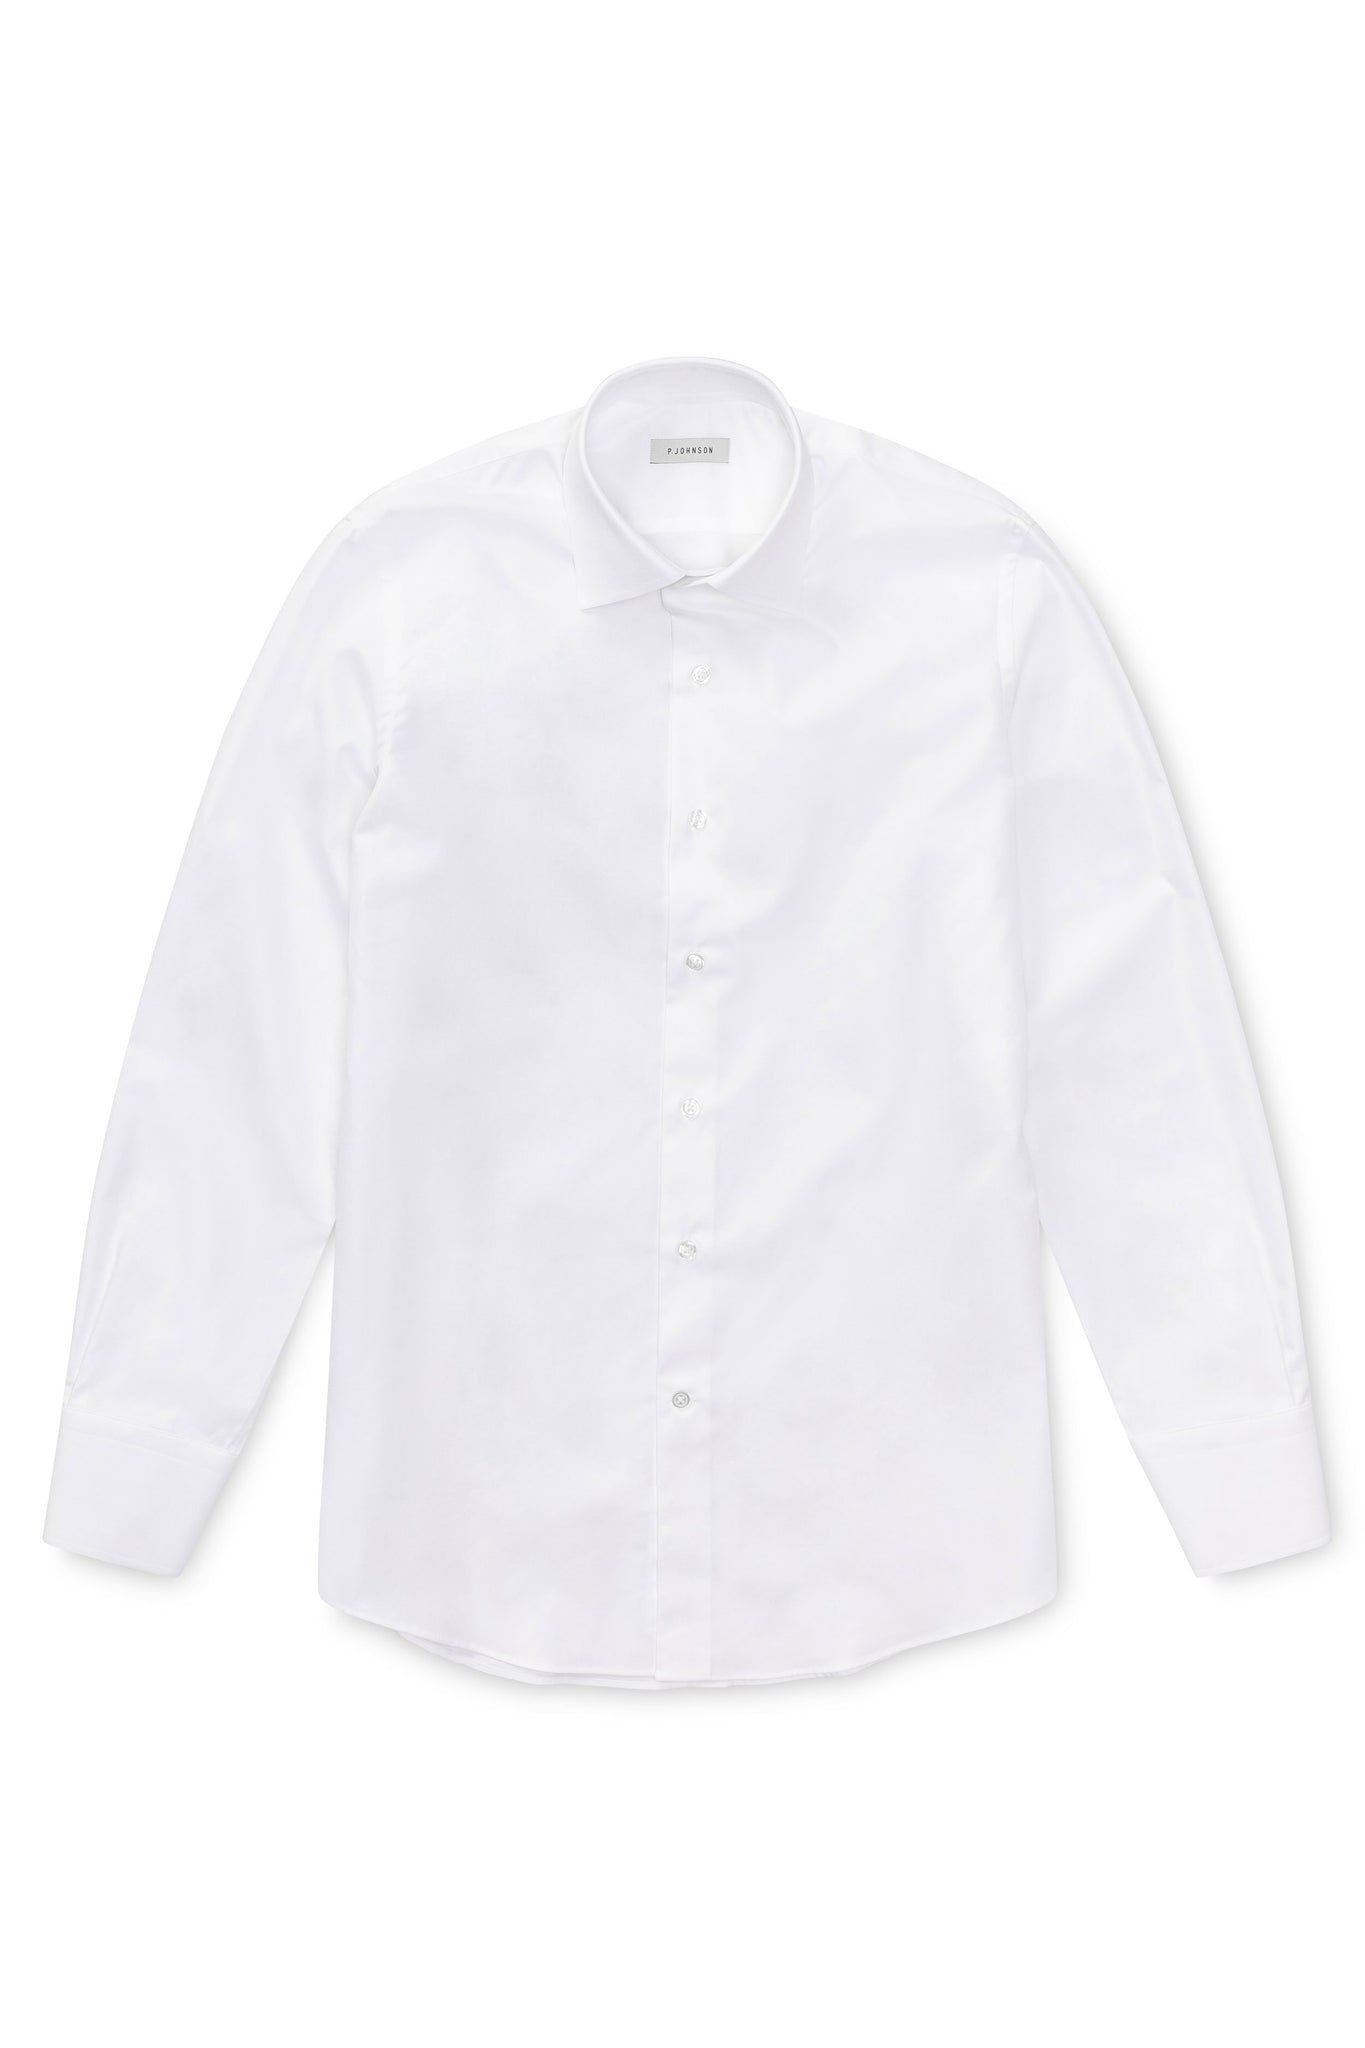 P Johnson Classic White Twill Shirt